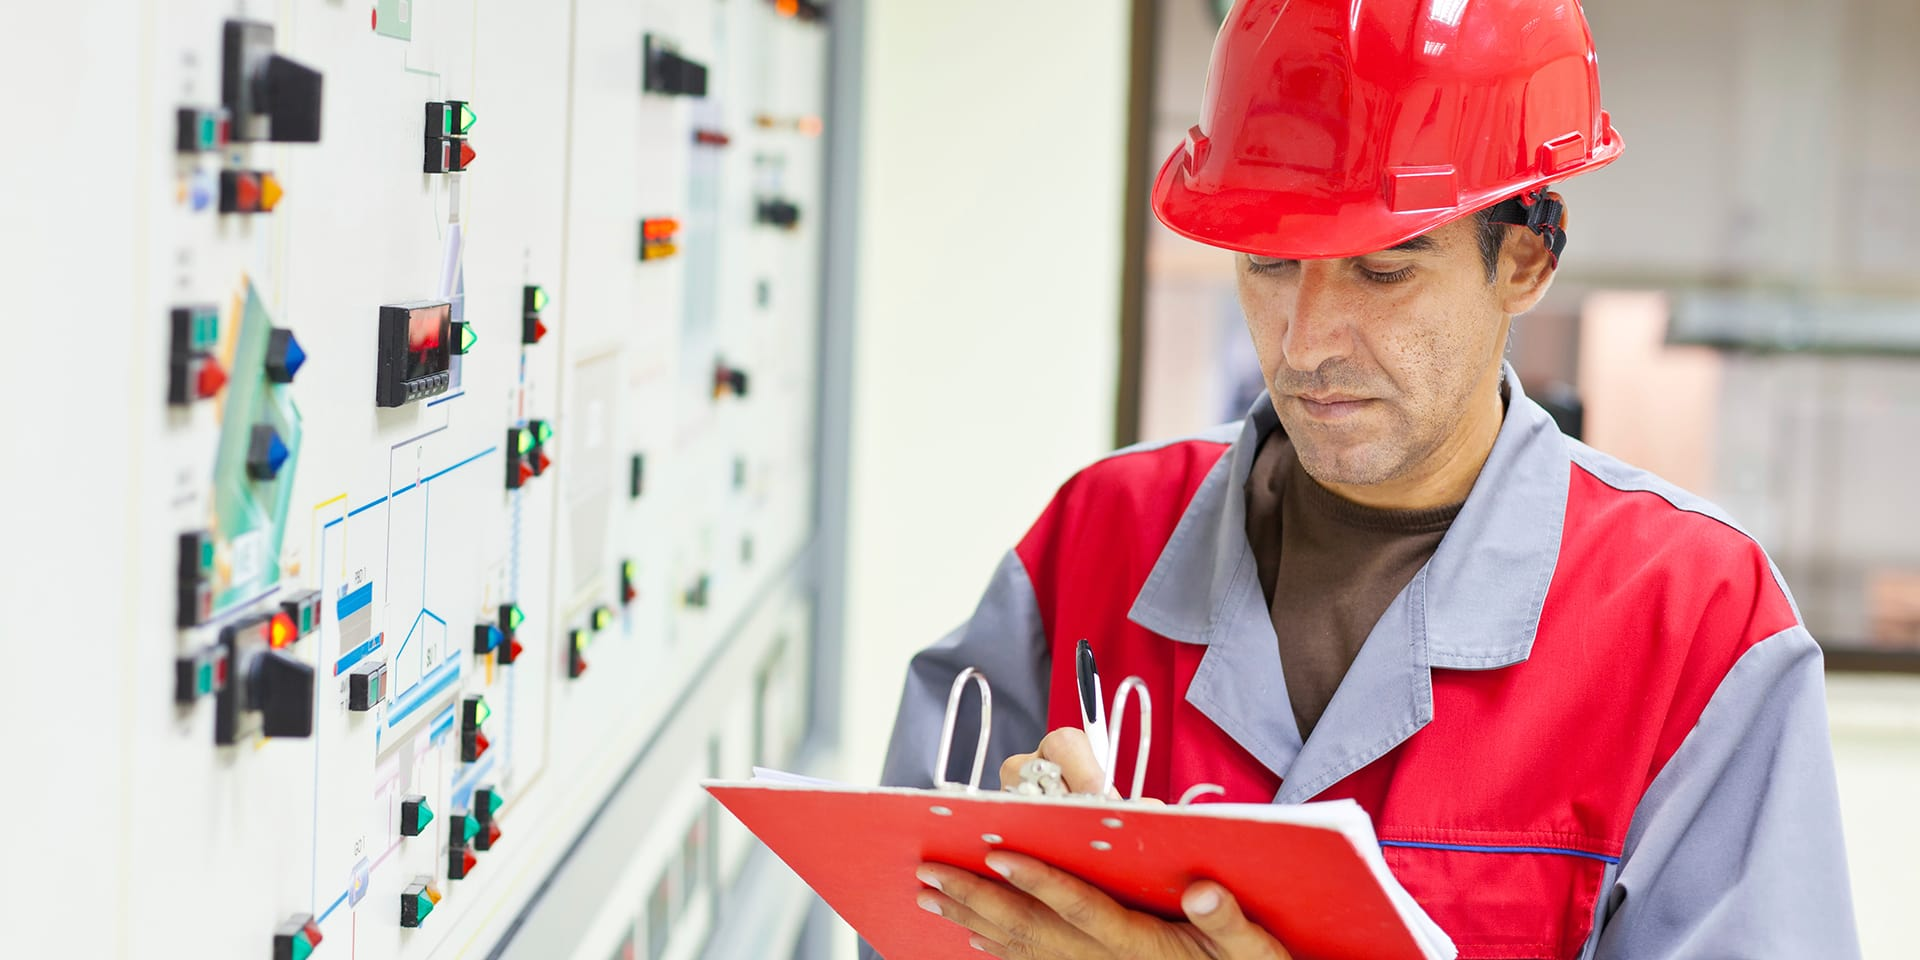 automatic scheduling internal controls - worker writes down some controlling notes